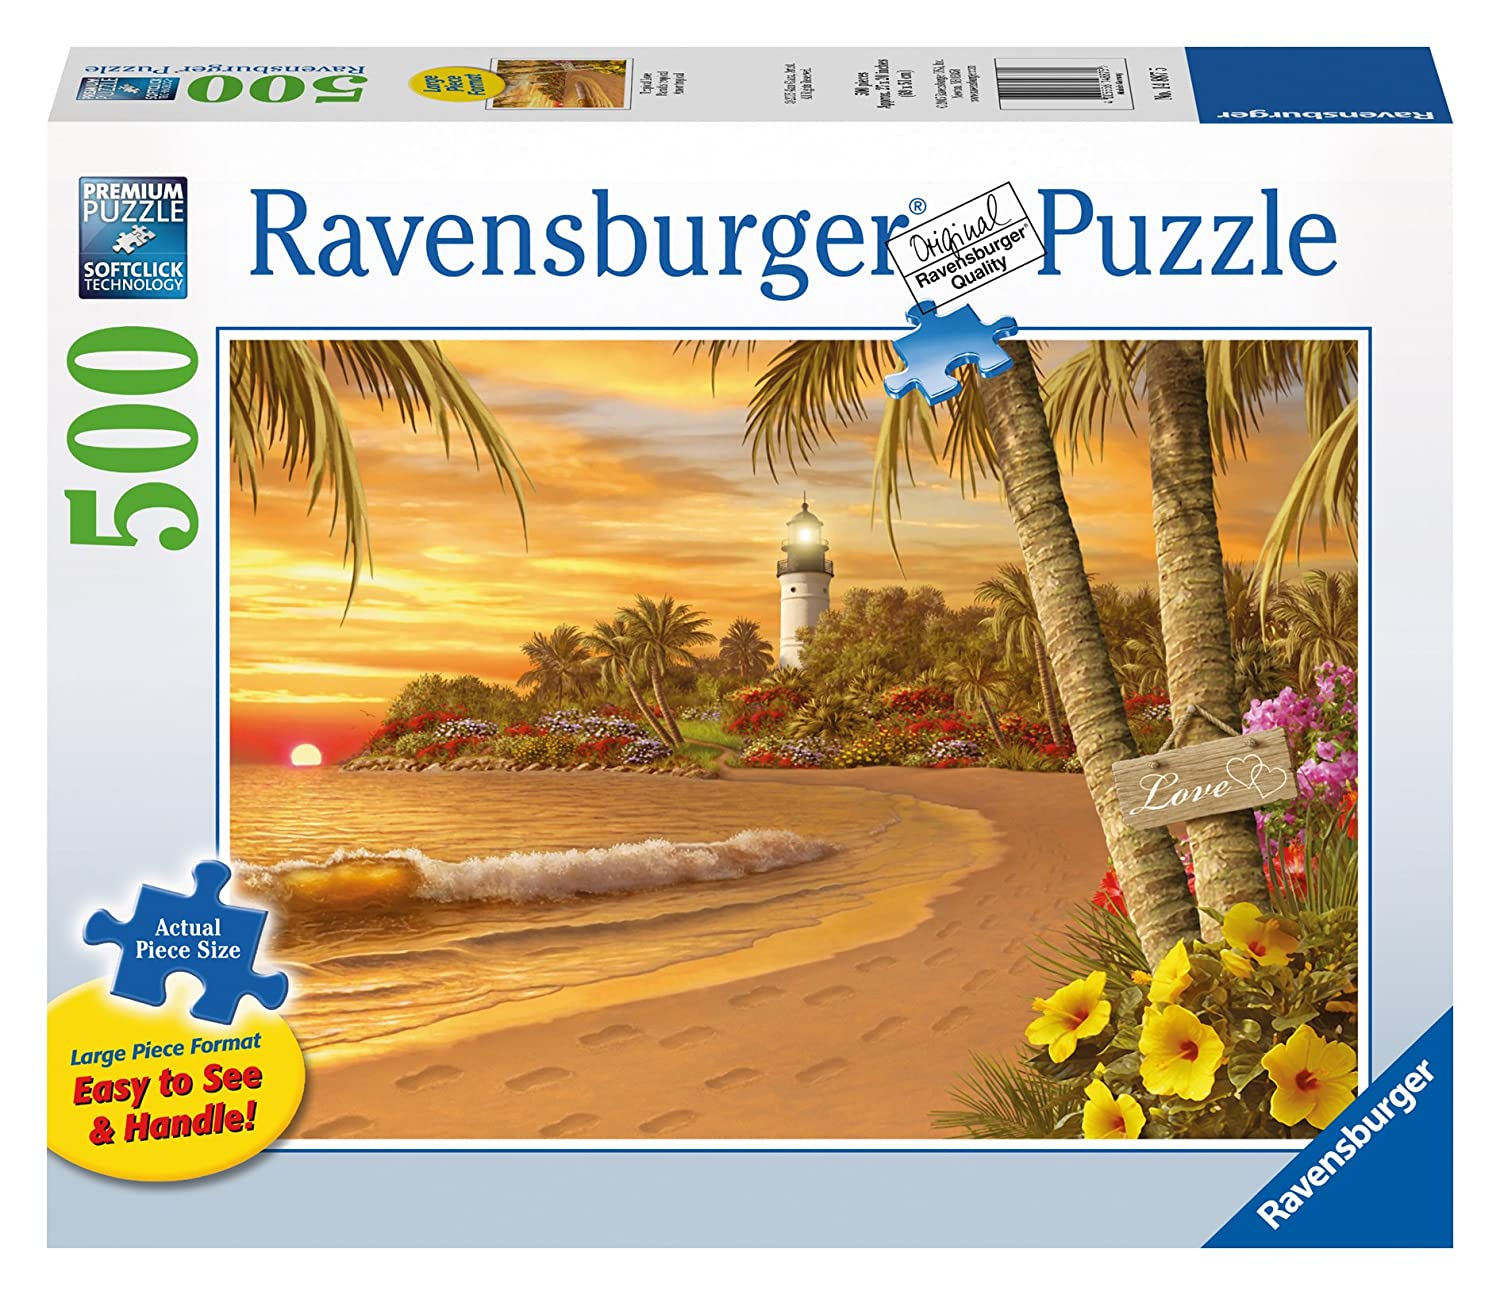 Ravensburger Tropical Love Large Format Puzzle (500-Piece) by Ravensburger